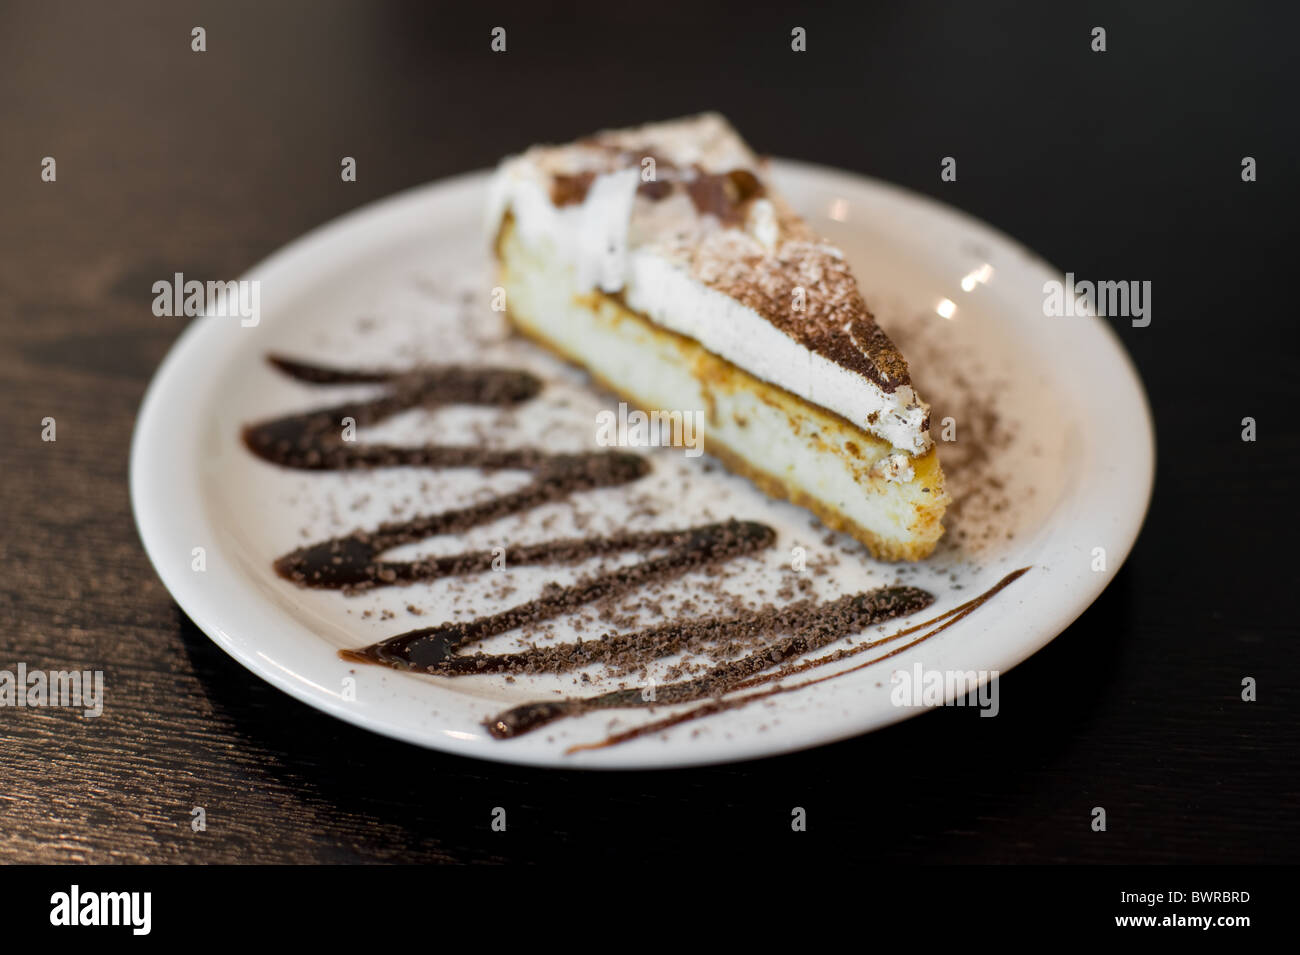 a piece of sponge cake with white cream and dusted with chocolate - Stock Image